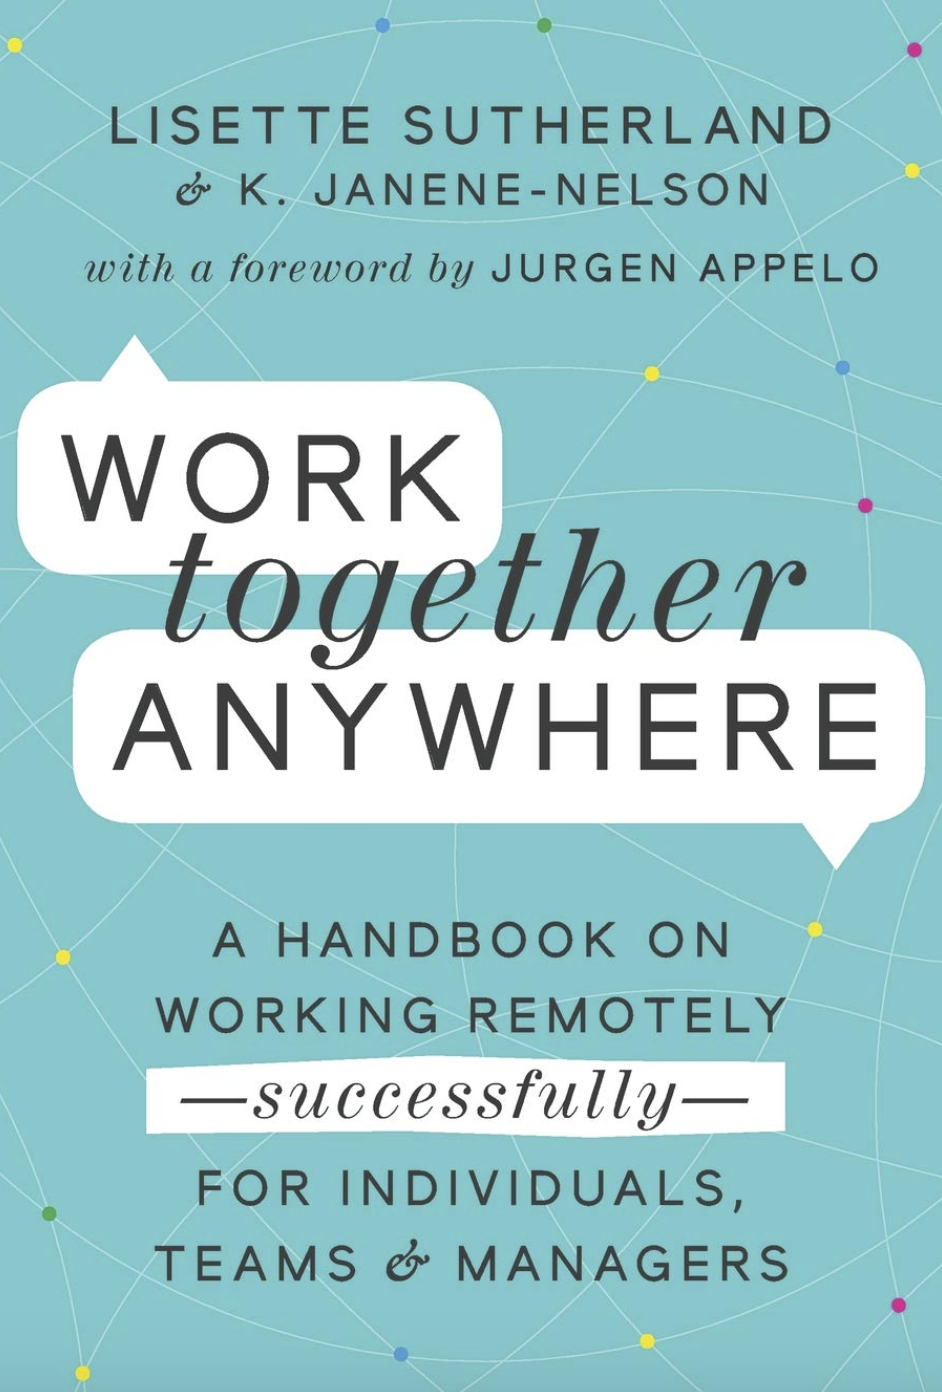 Work Together Anywhere - A Handbook on Working Remotely – Successfully – for Individuals, Teams & Managers by Lisette Sutherland and Kirsten Janene-Nelson, Wiley, 2020